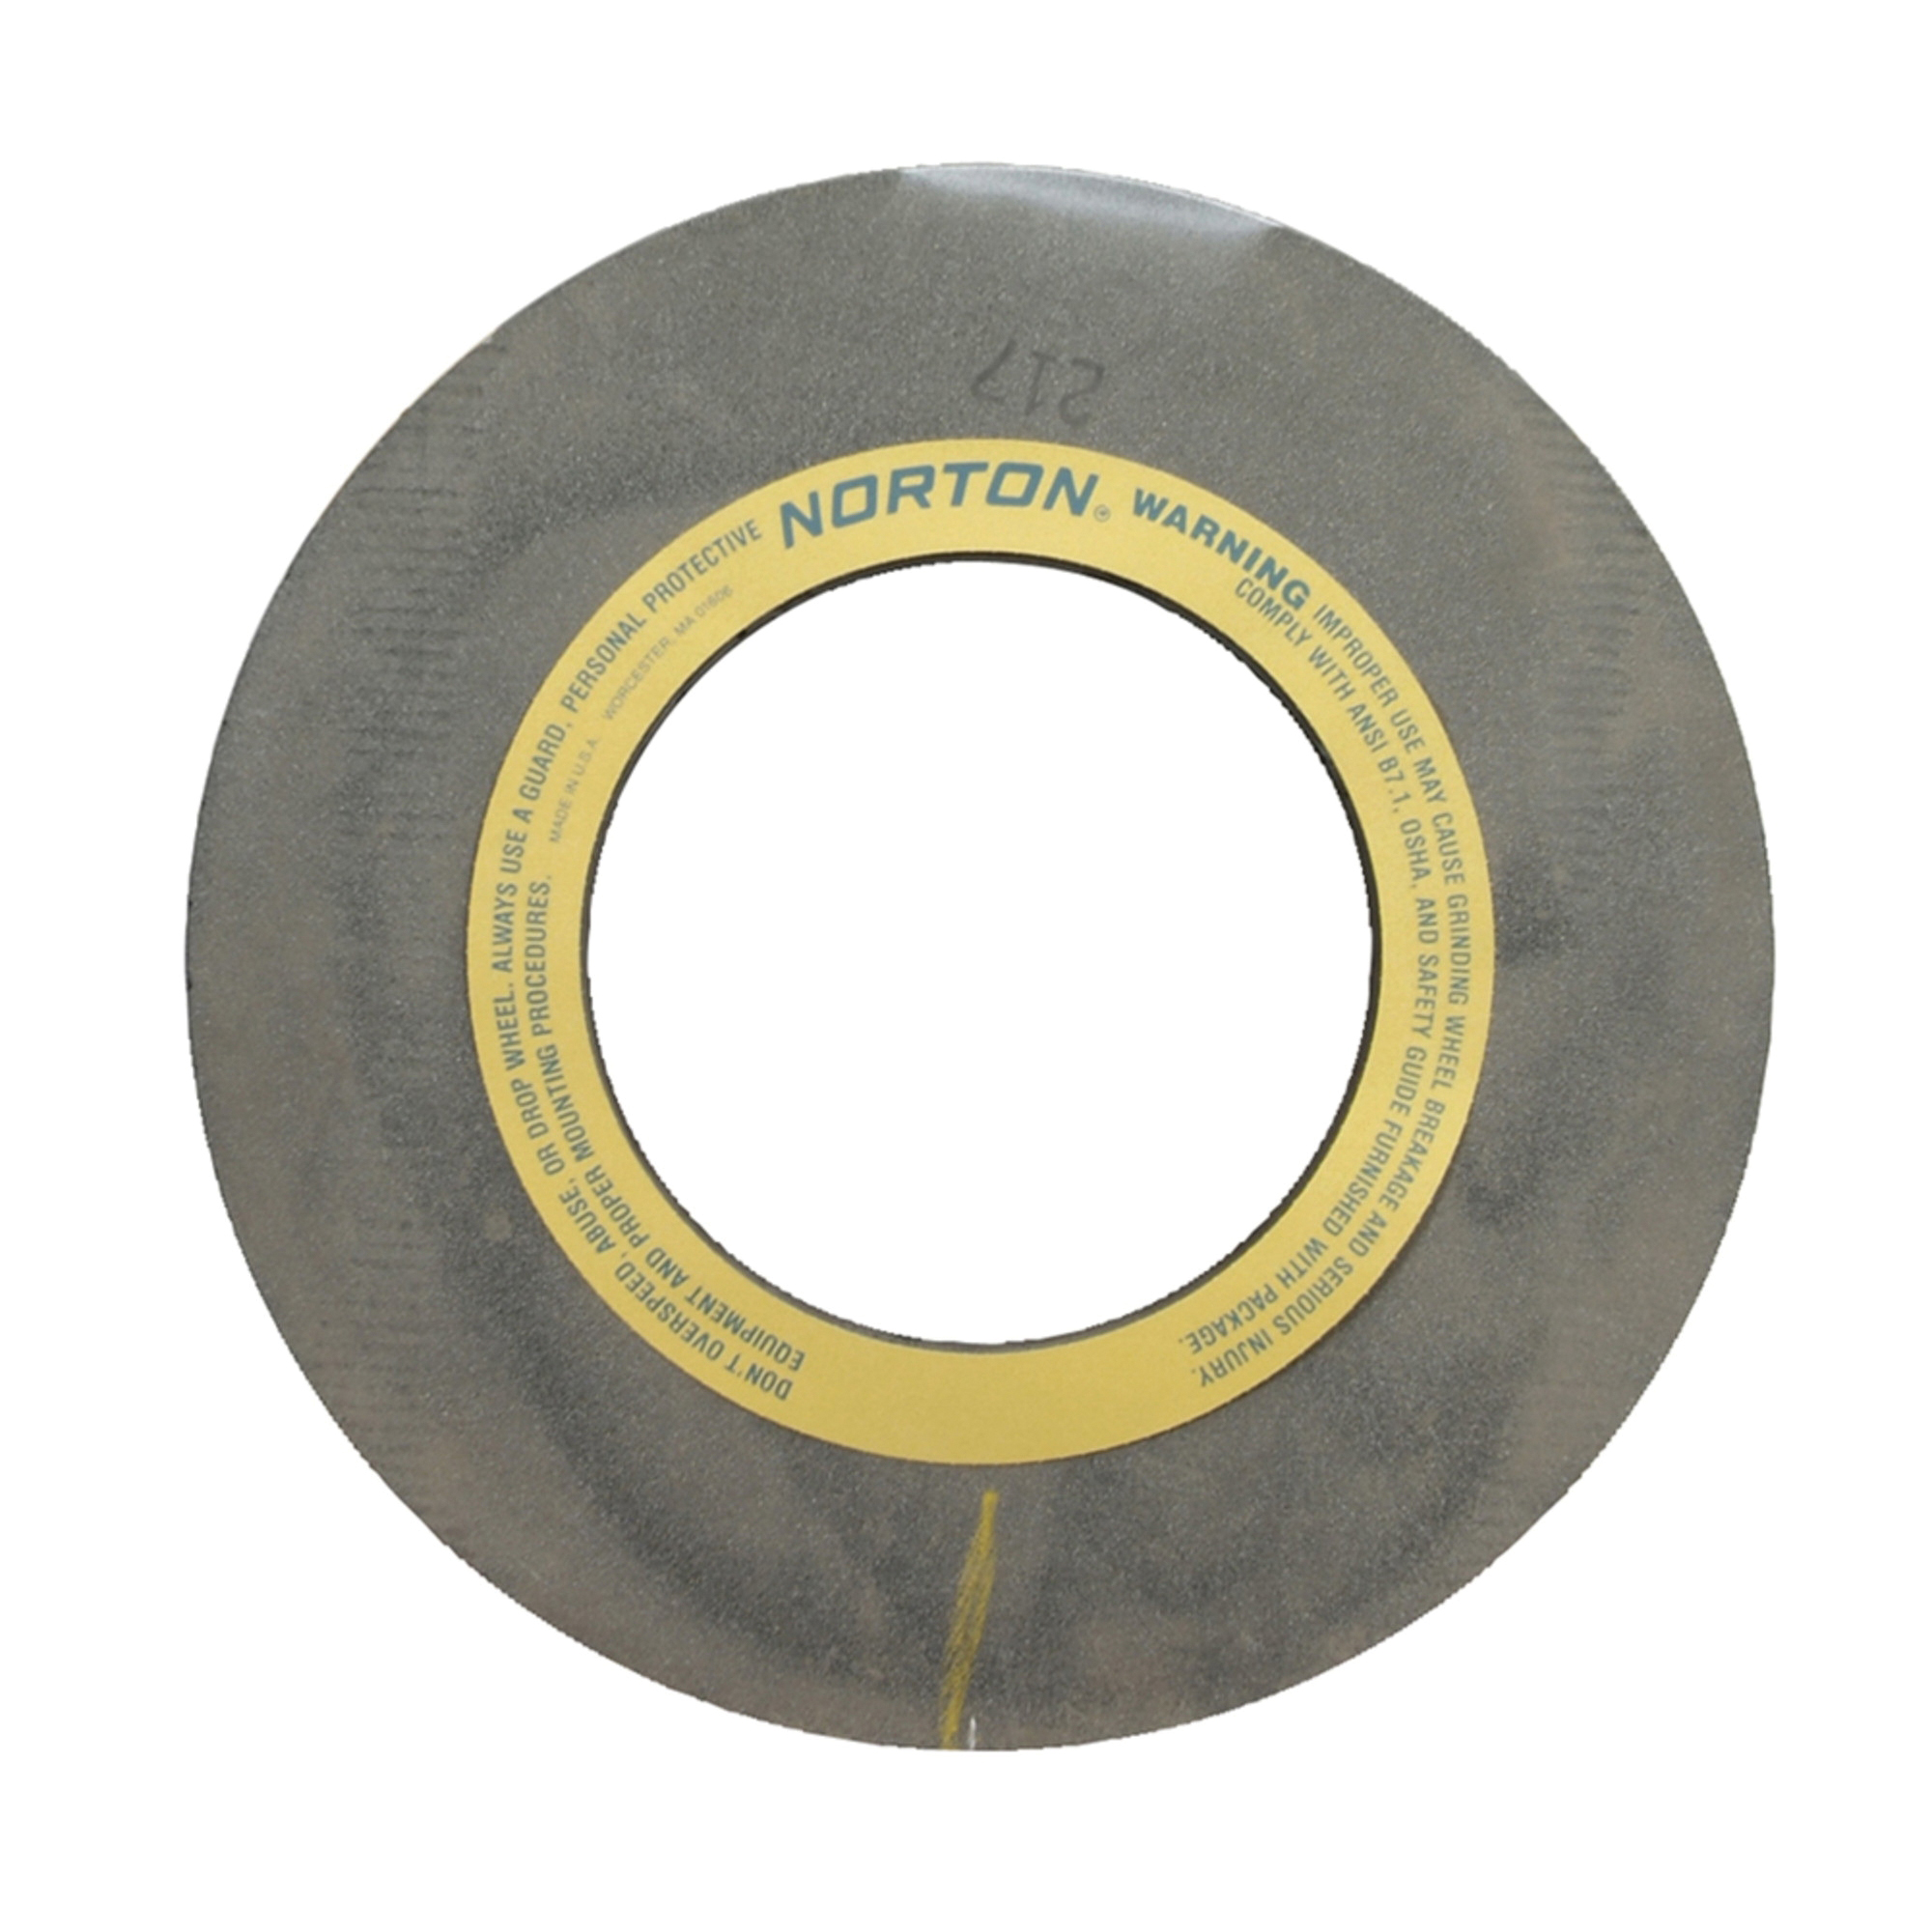 Norton® 69083166553 32A Straight Centerless Grinding Wheel, 24 in Dia x 20 in THK, 305 mm Center Hole, 54 Grit, Aluminum Oxide Abrasive